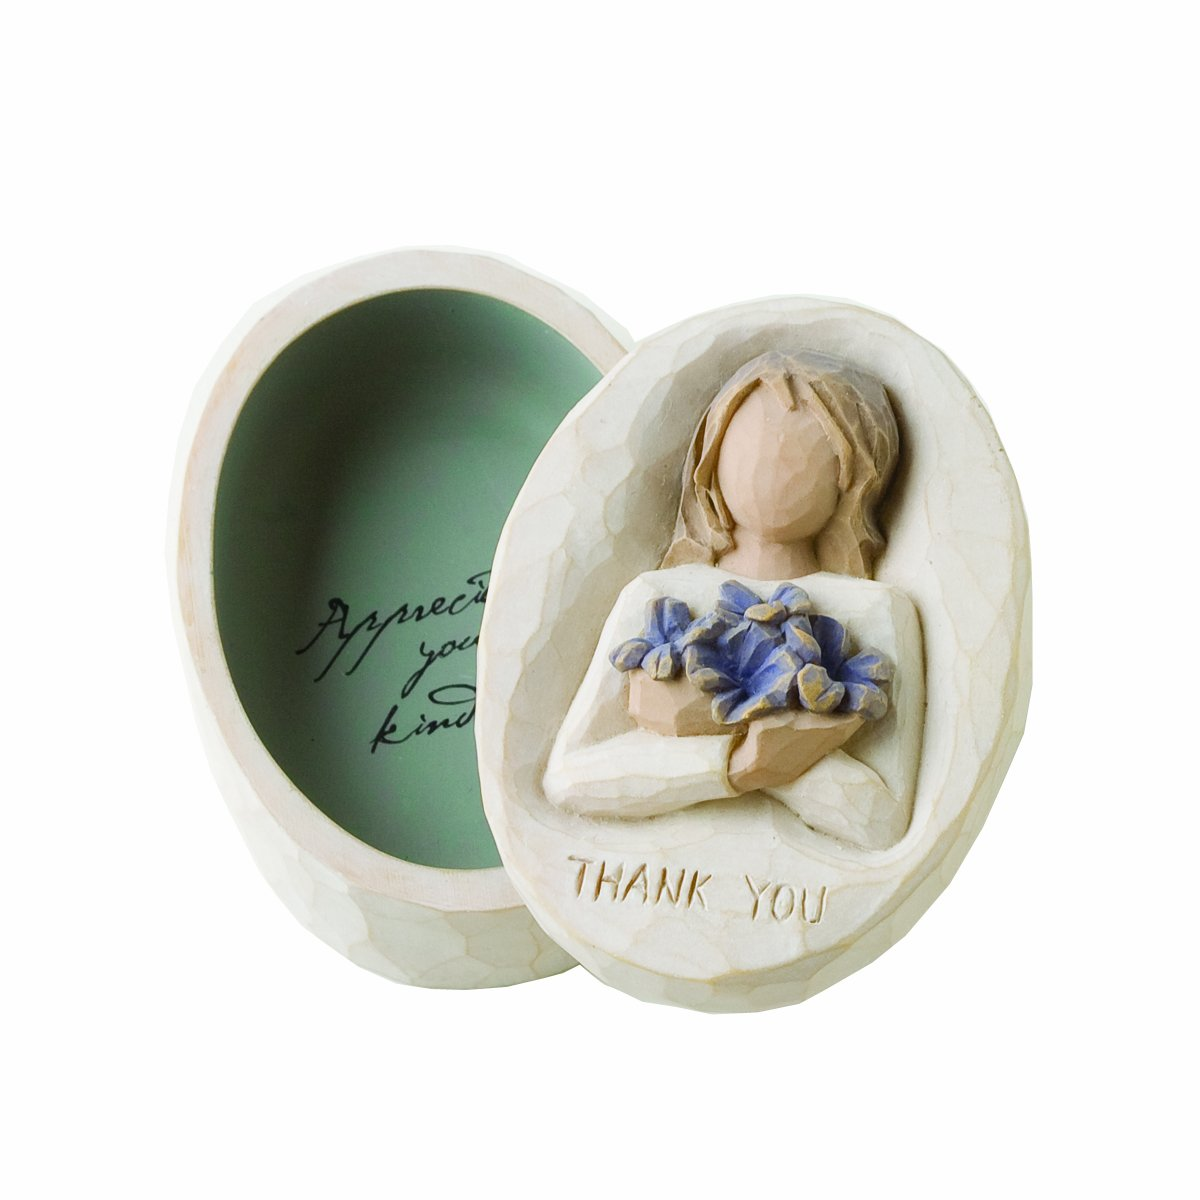 Demdaco Willow Tree Thank You Keepsake Box